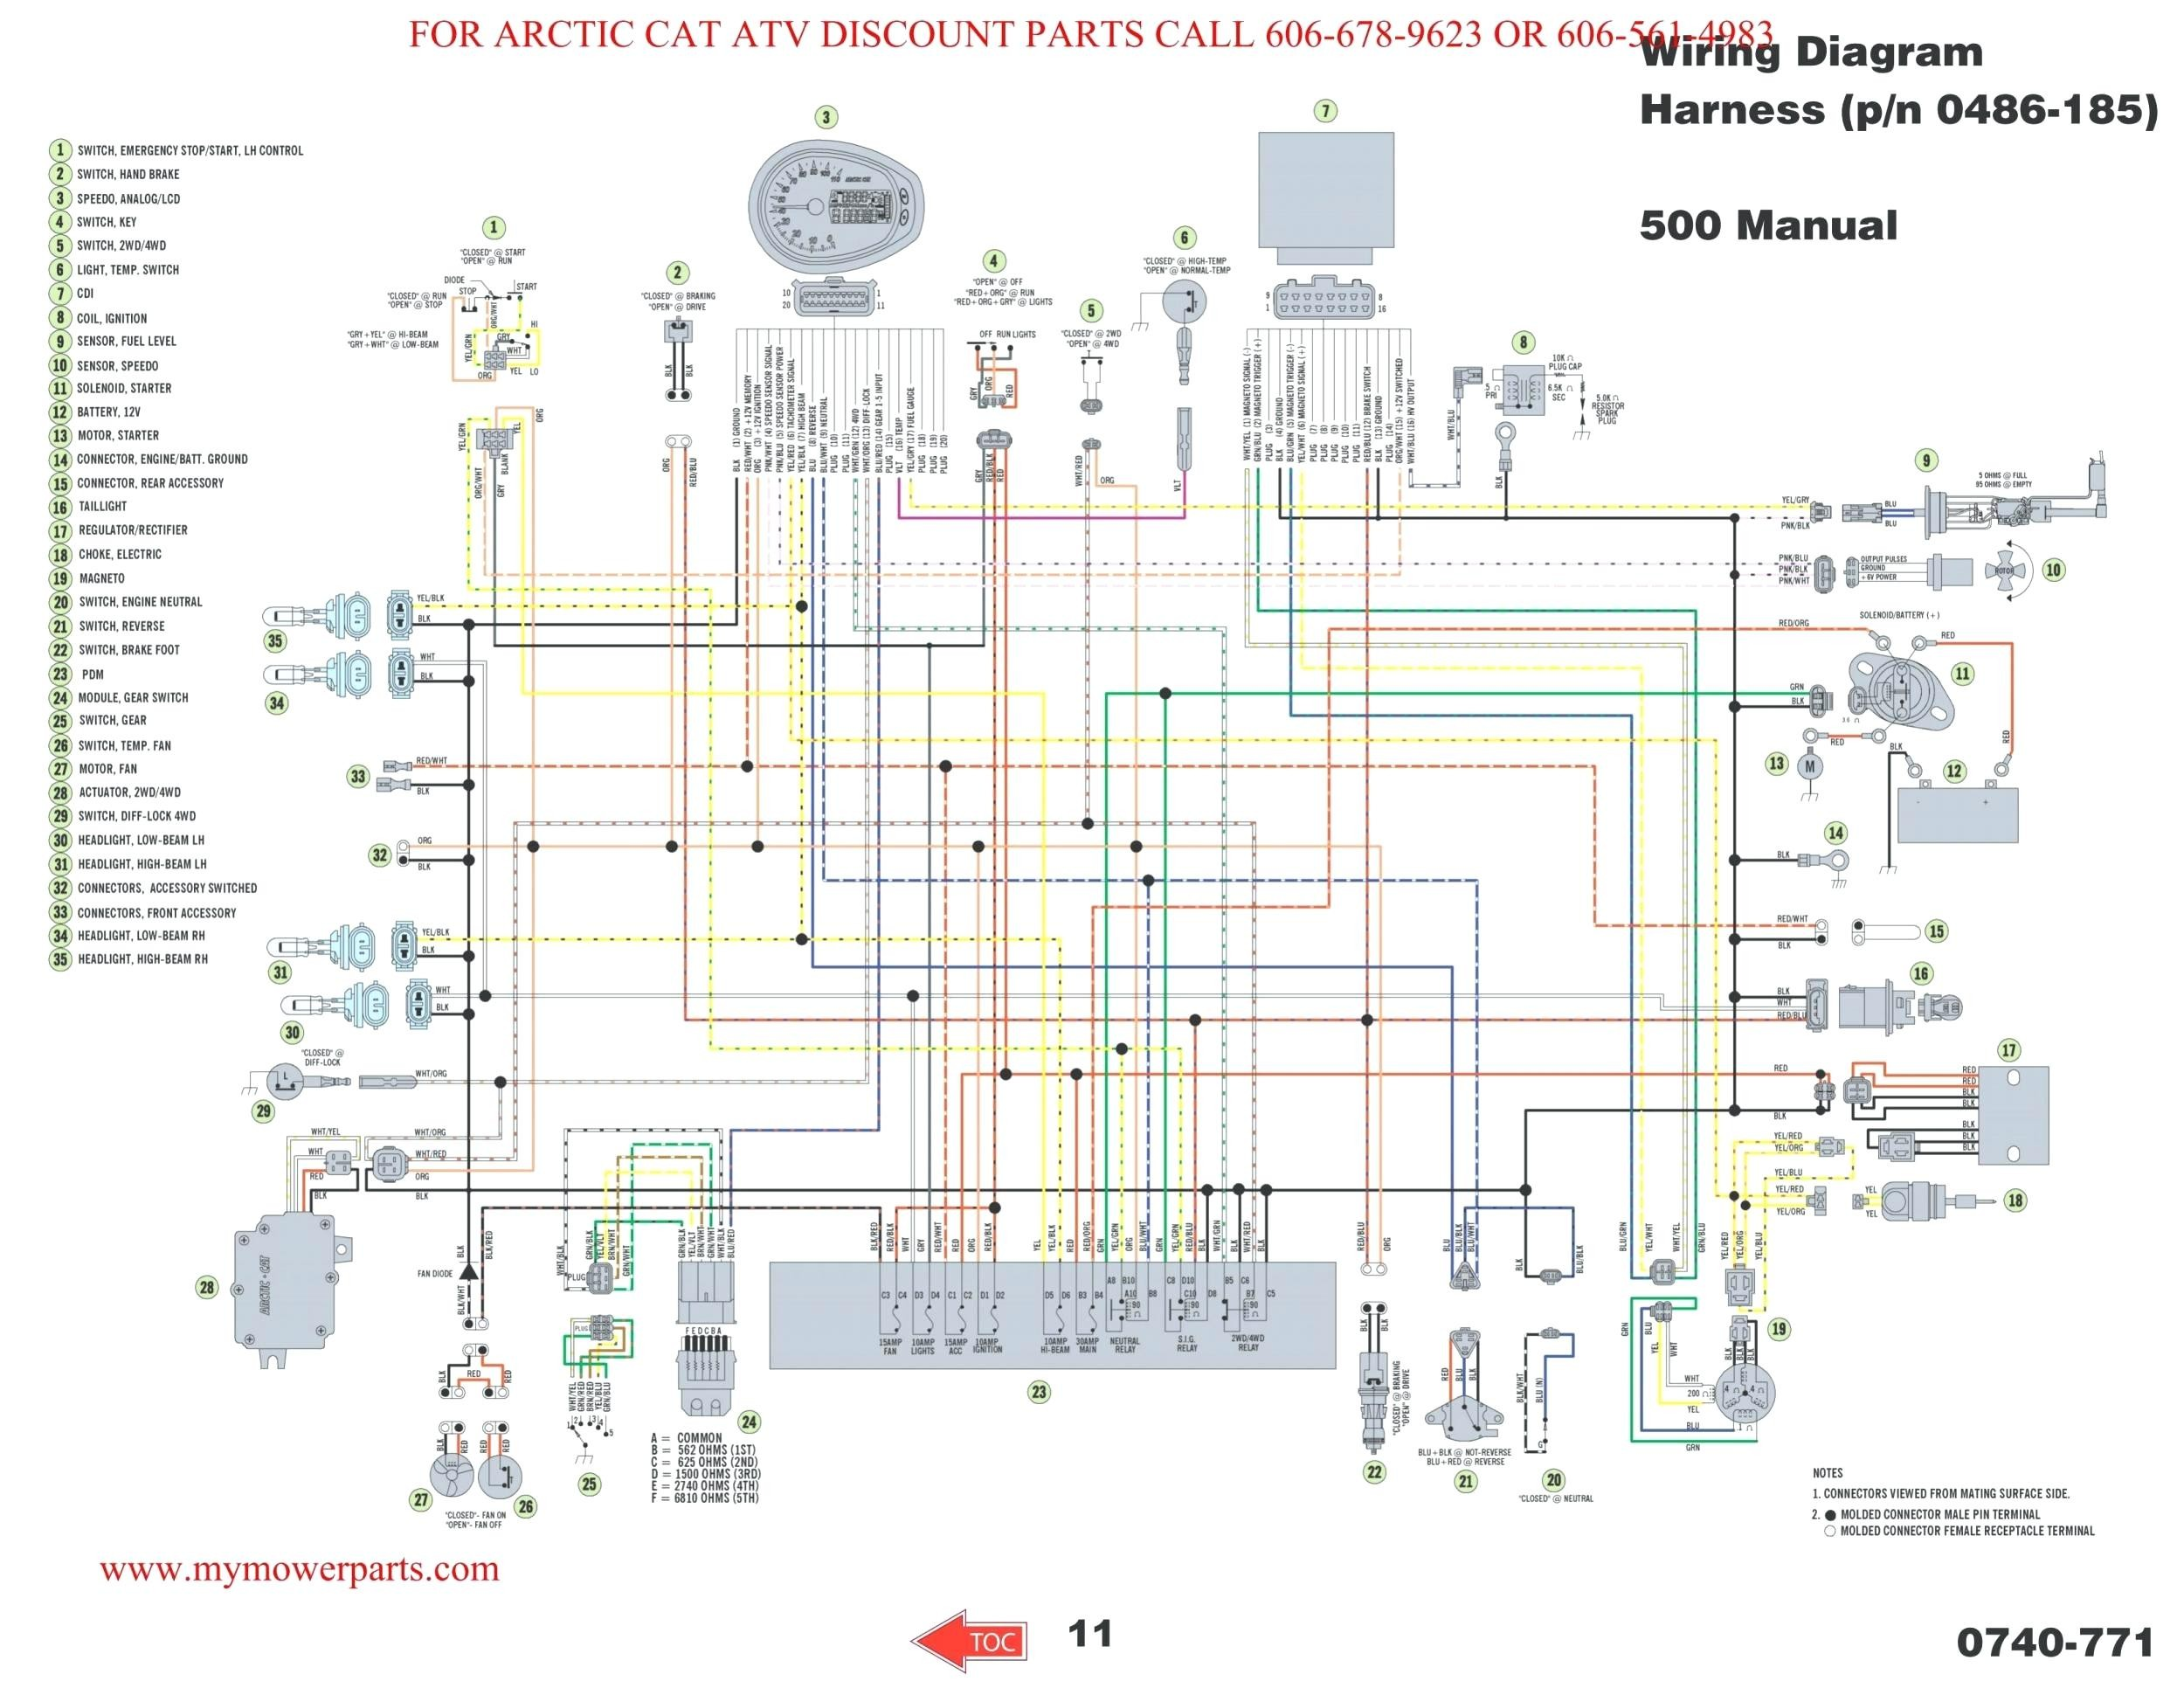 Camry Engine Diagram Wiring Diagram for Friedland Doorbell 1995 toyota Camry Engine Of Camry Engine Diagram